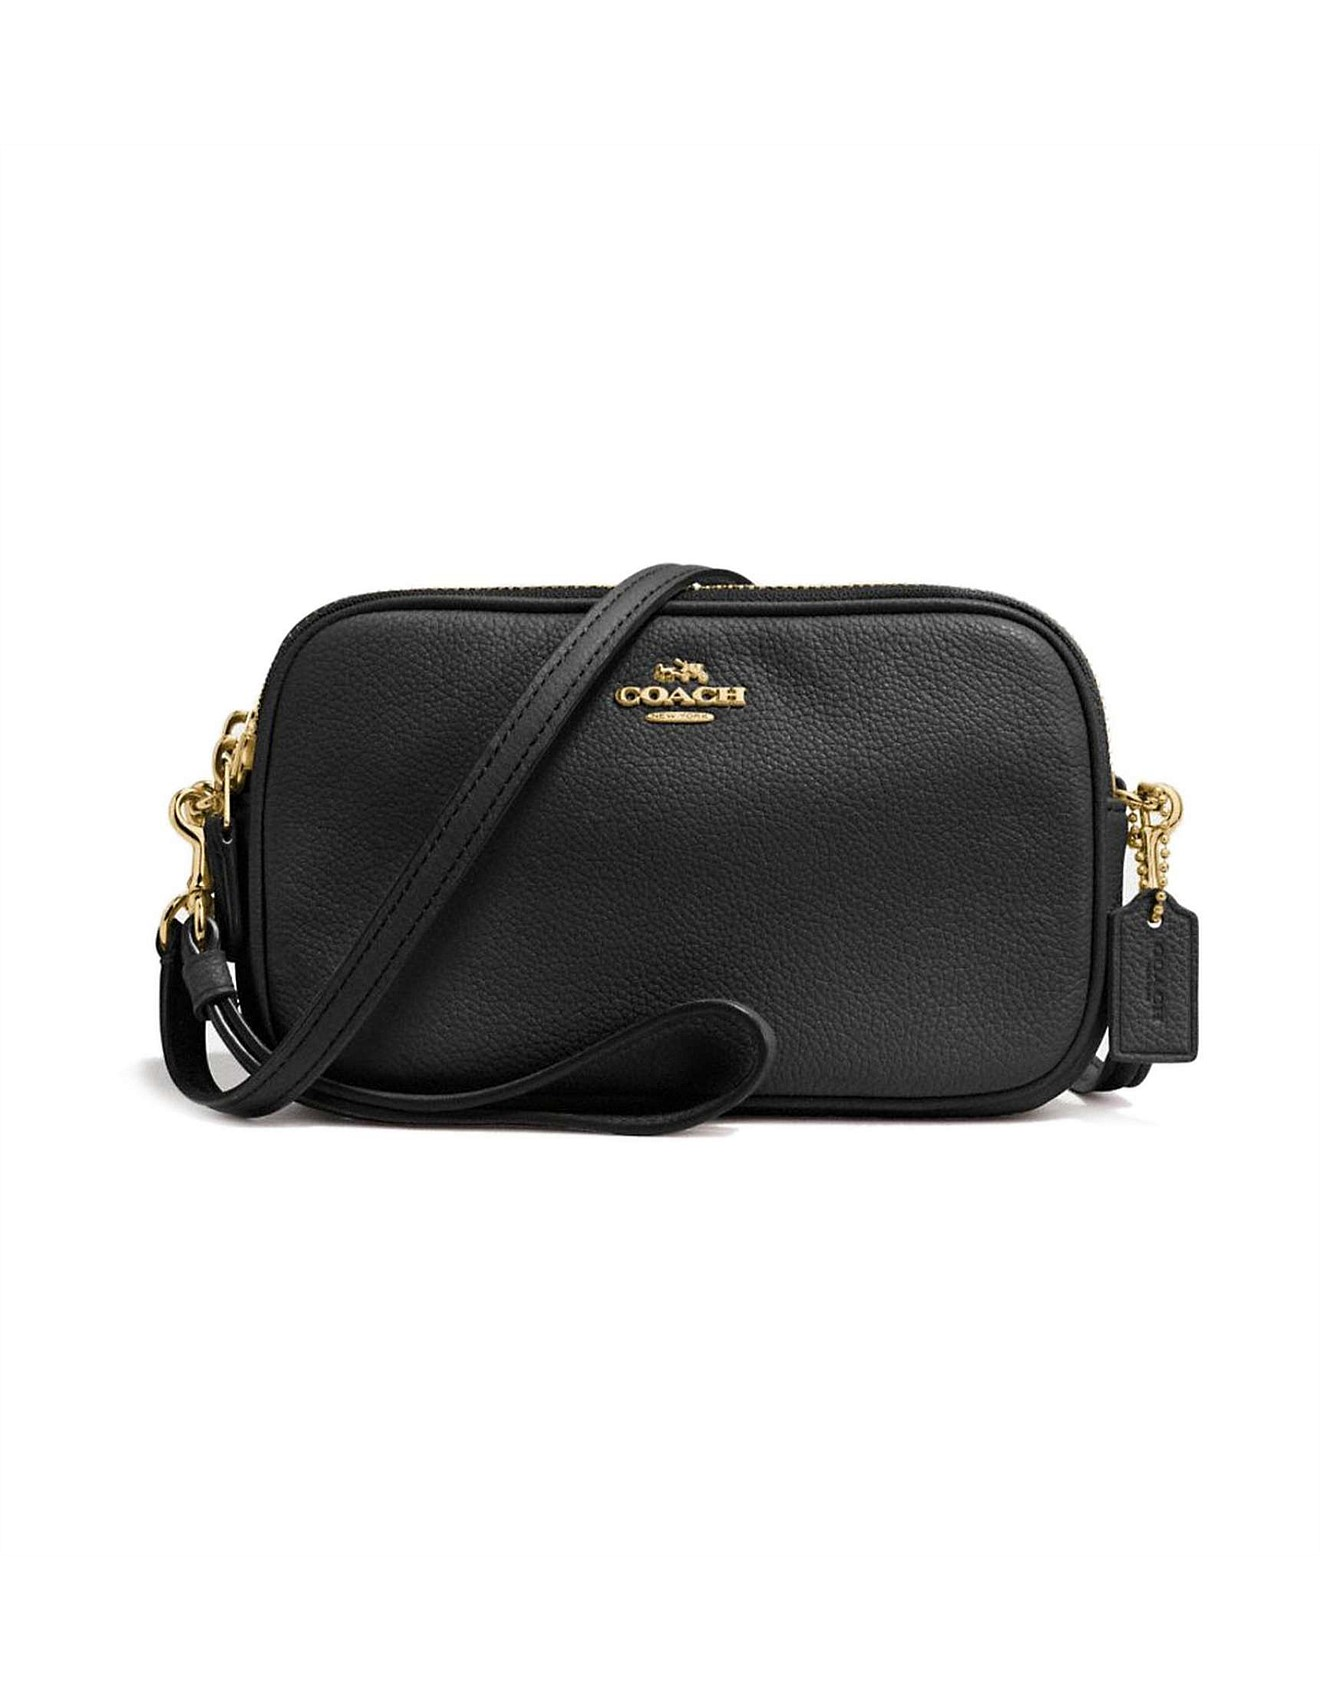 aa721ef1ab14 CROSSBODY CLUTCH IN POLISHED PEBBLE LEATHER